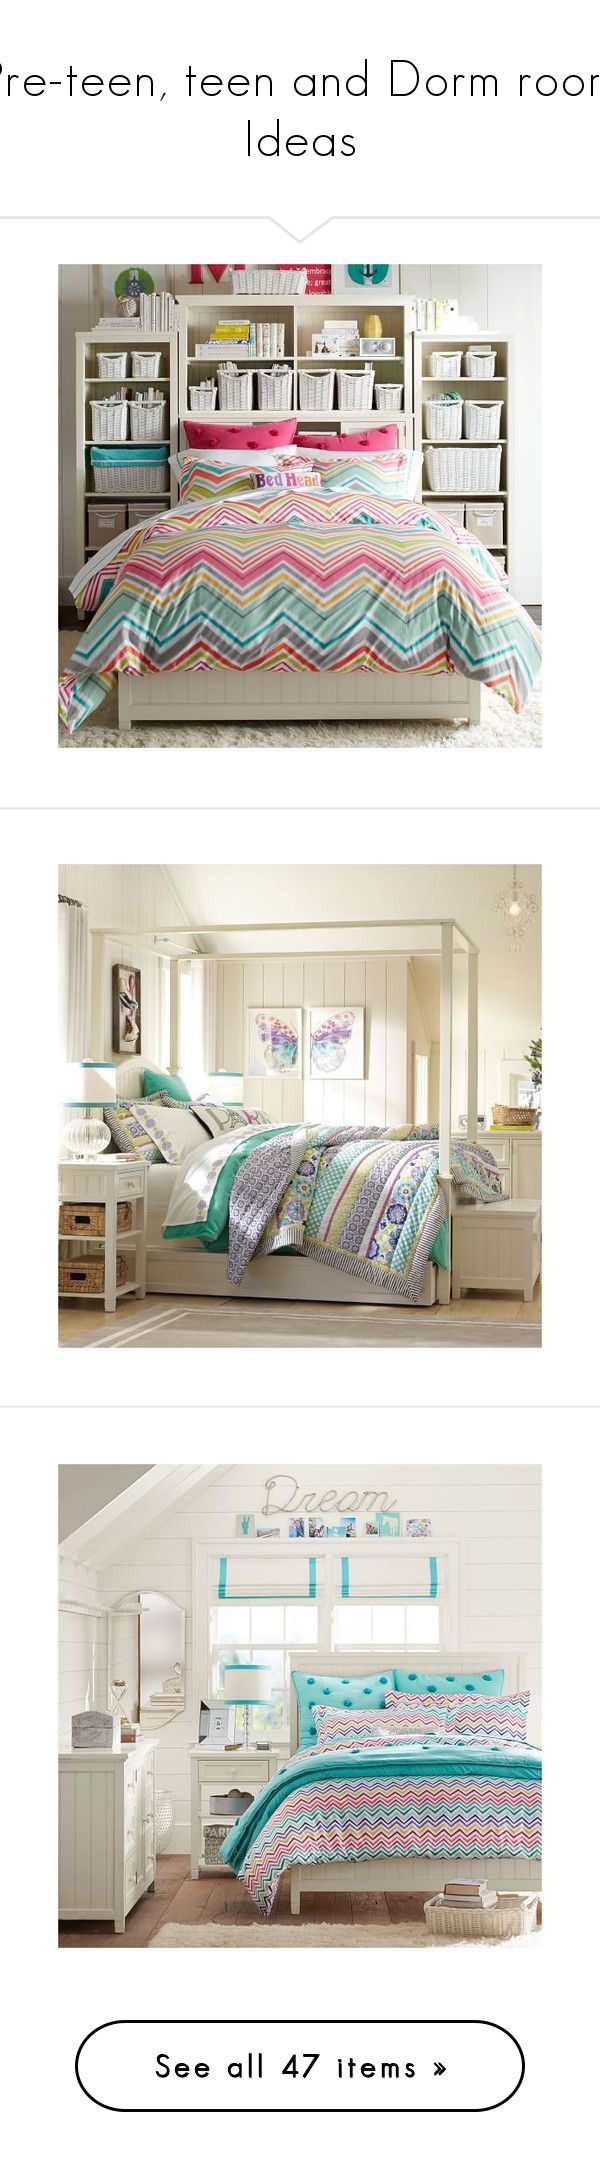 Accessories choose an option under bed drawers trundle bed none -  Pre Teen Teen And Dorm Room Ideas By Caitlin Rosling Liked On Polyvore Featuring Home Furniture Beds Full Trundle Bed Wood Queen Headboard